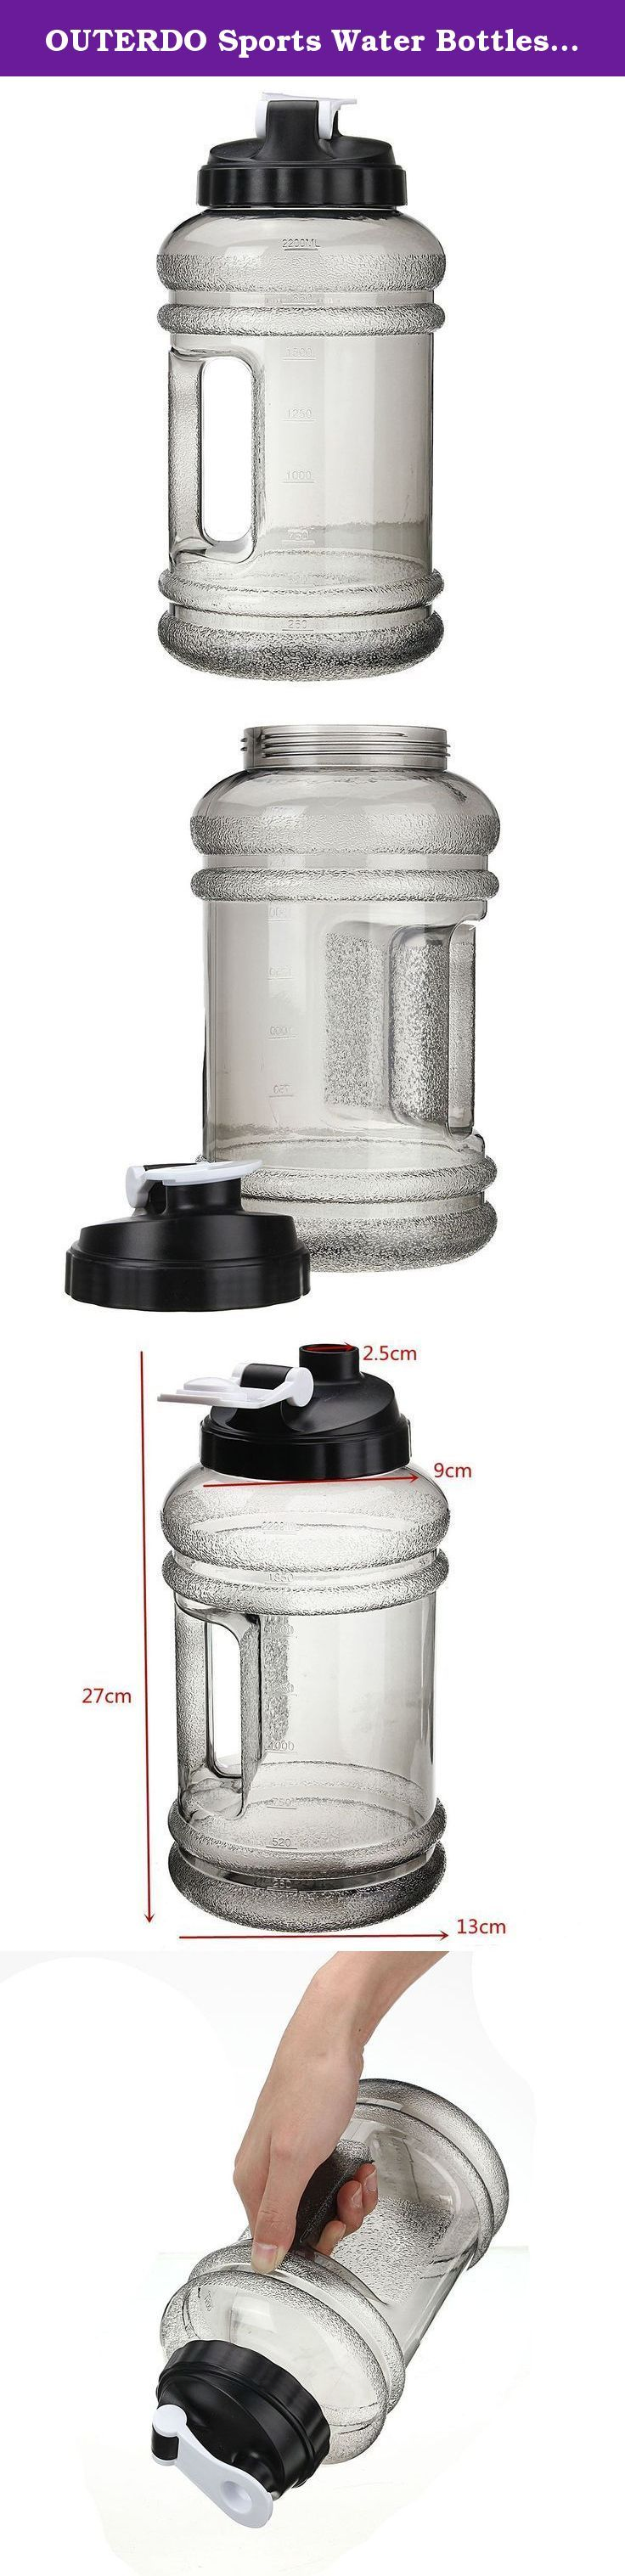 OUTERDO Sports Water Bottles 2.2 Liter BPA Free High-Capacity Water Bottles With Handle and Push Cap for Outdoor Sports Bodybuilding, Playing Basketball ,Camping Trips and to the gym. Features: 1. Big Capacity, with 2.2L, meet your water need in sports. 2. Ideal for outdoor sports like bodybuilding, playing basketball etc, also a nice choice for picnic, party and so on. 3. BPA Free, not suitable for hot liquid. 4. With handle and push cap, easy to carry. Specifications…